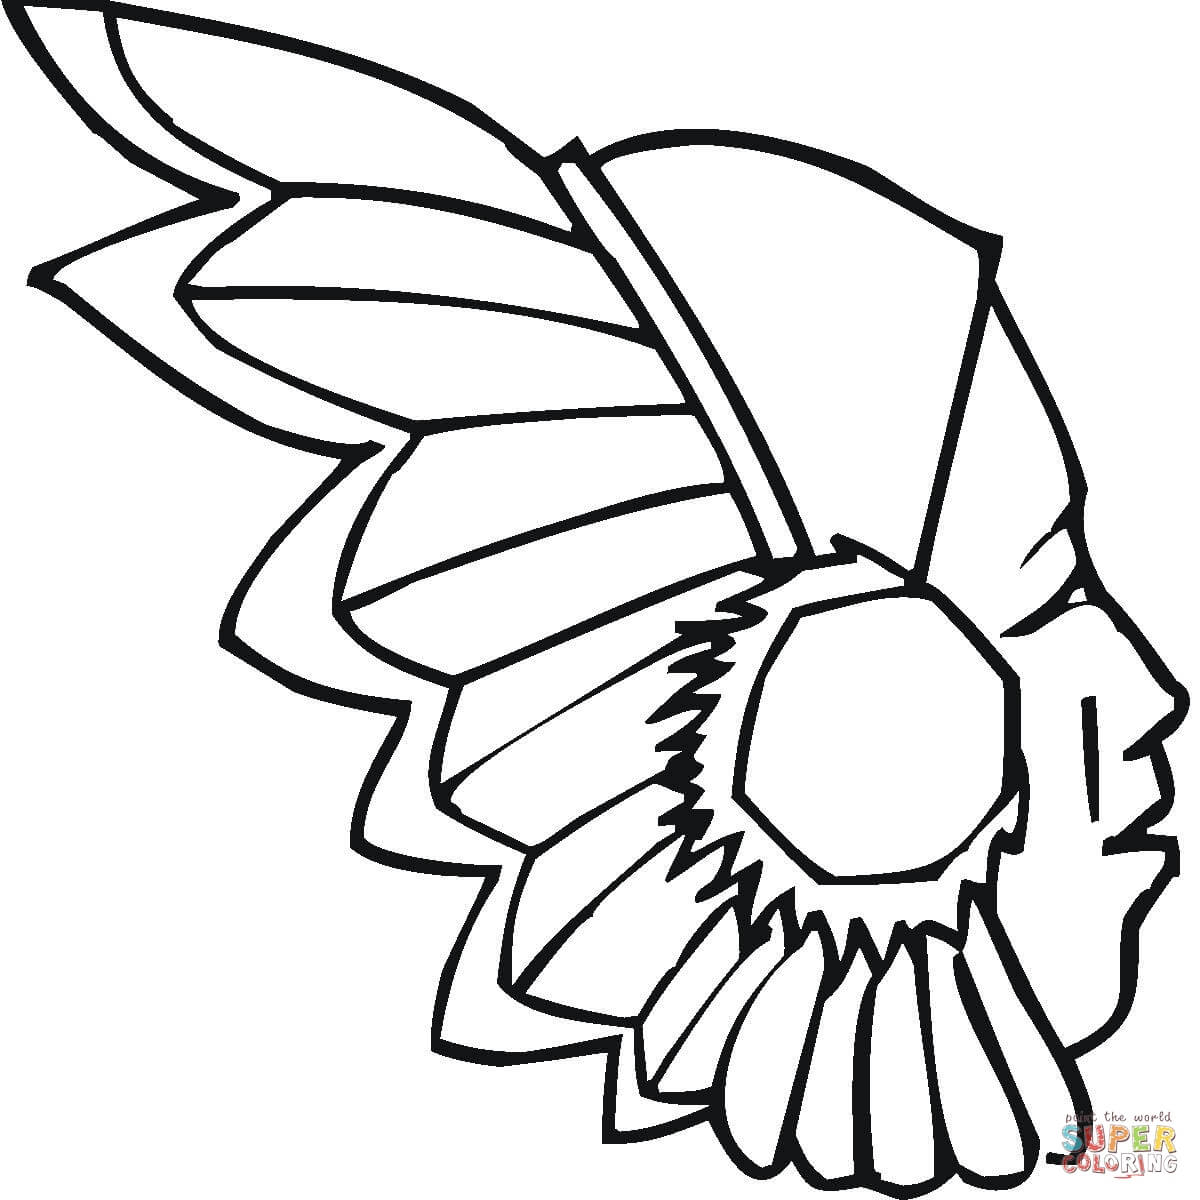 Native Americans Drawing at GetDrawings.com | Free for personal use ...